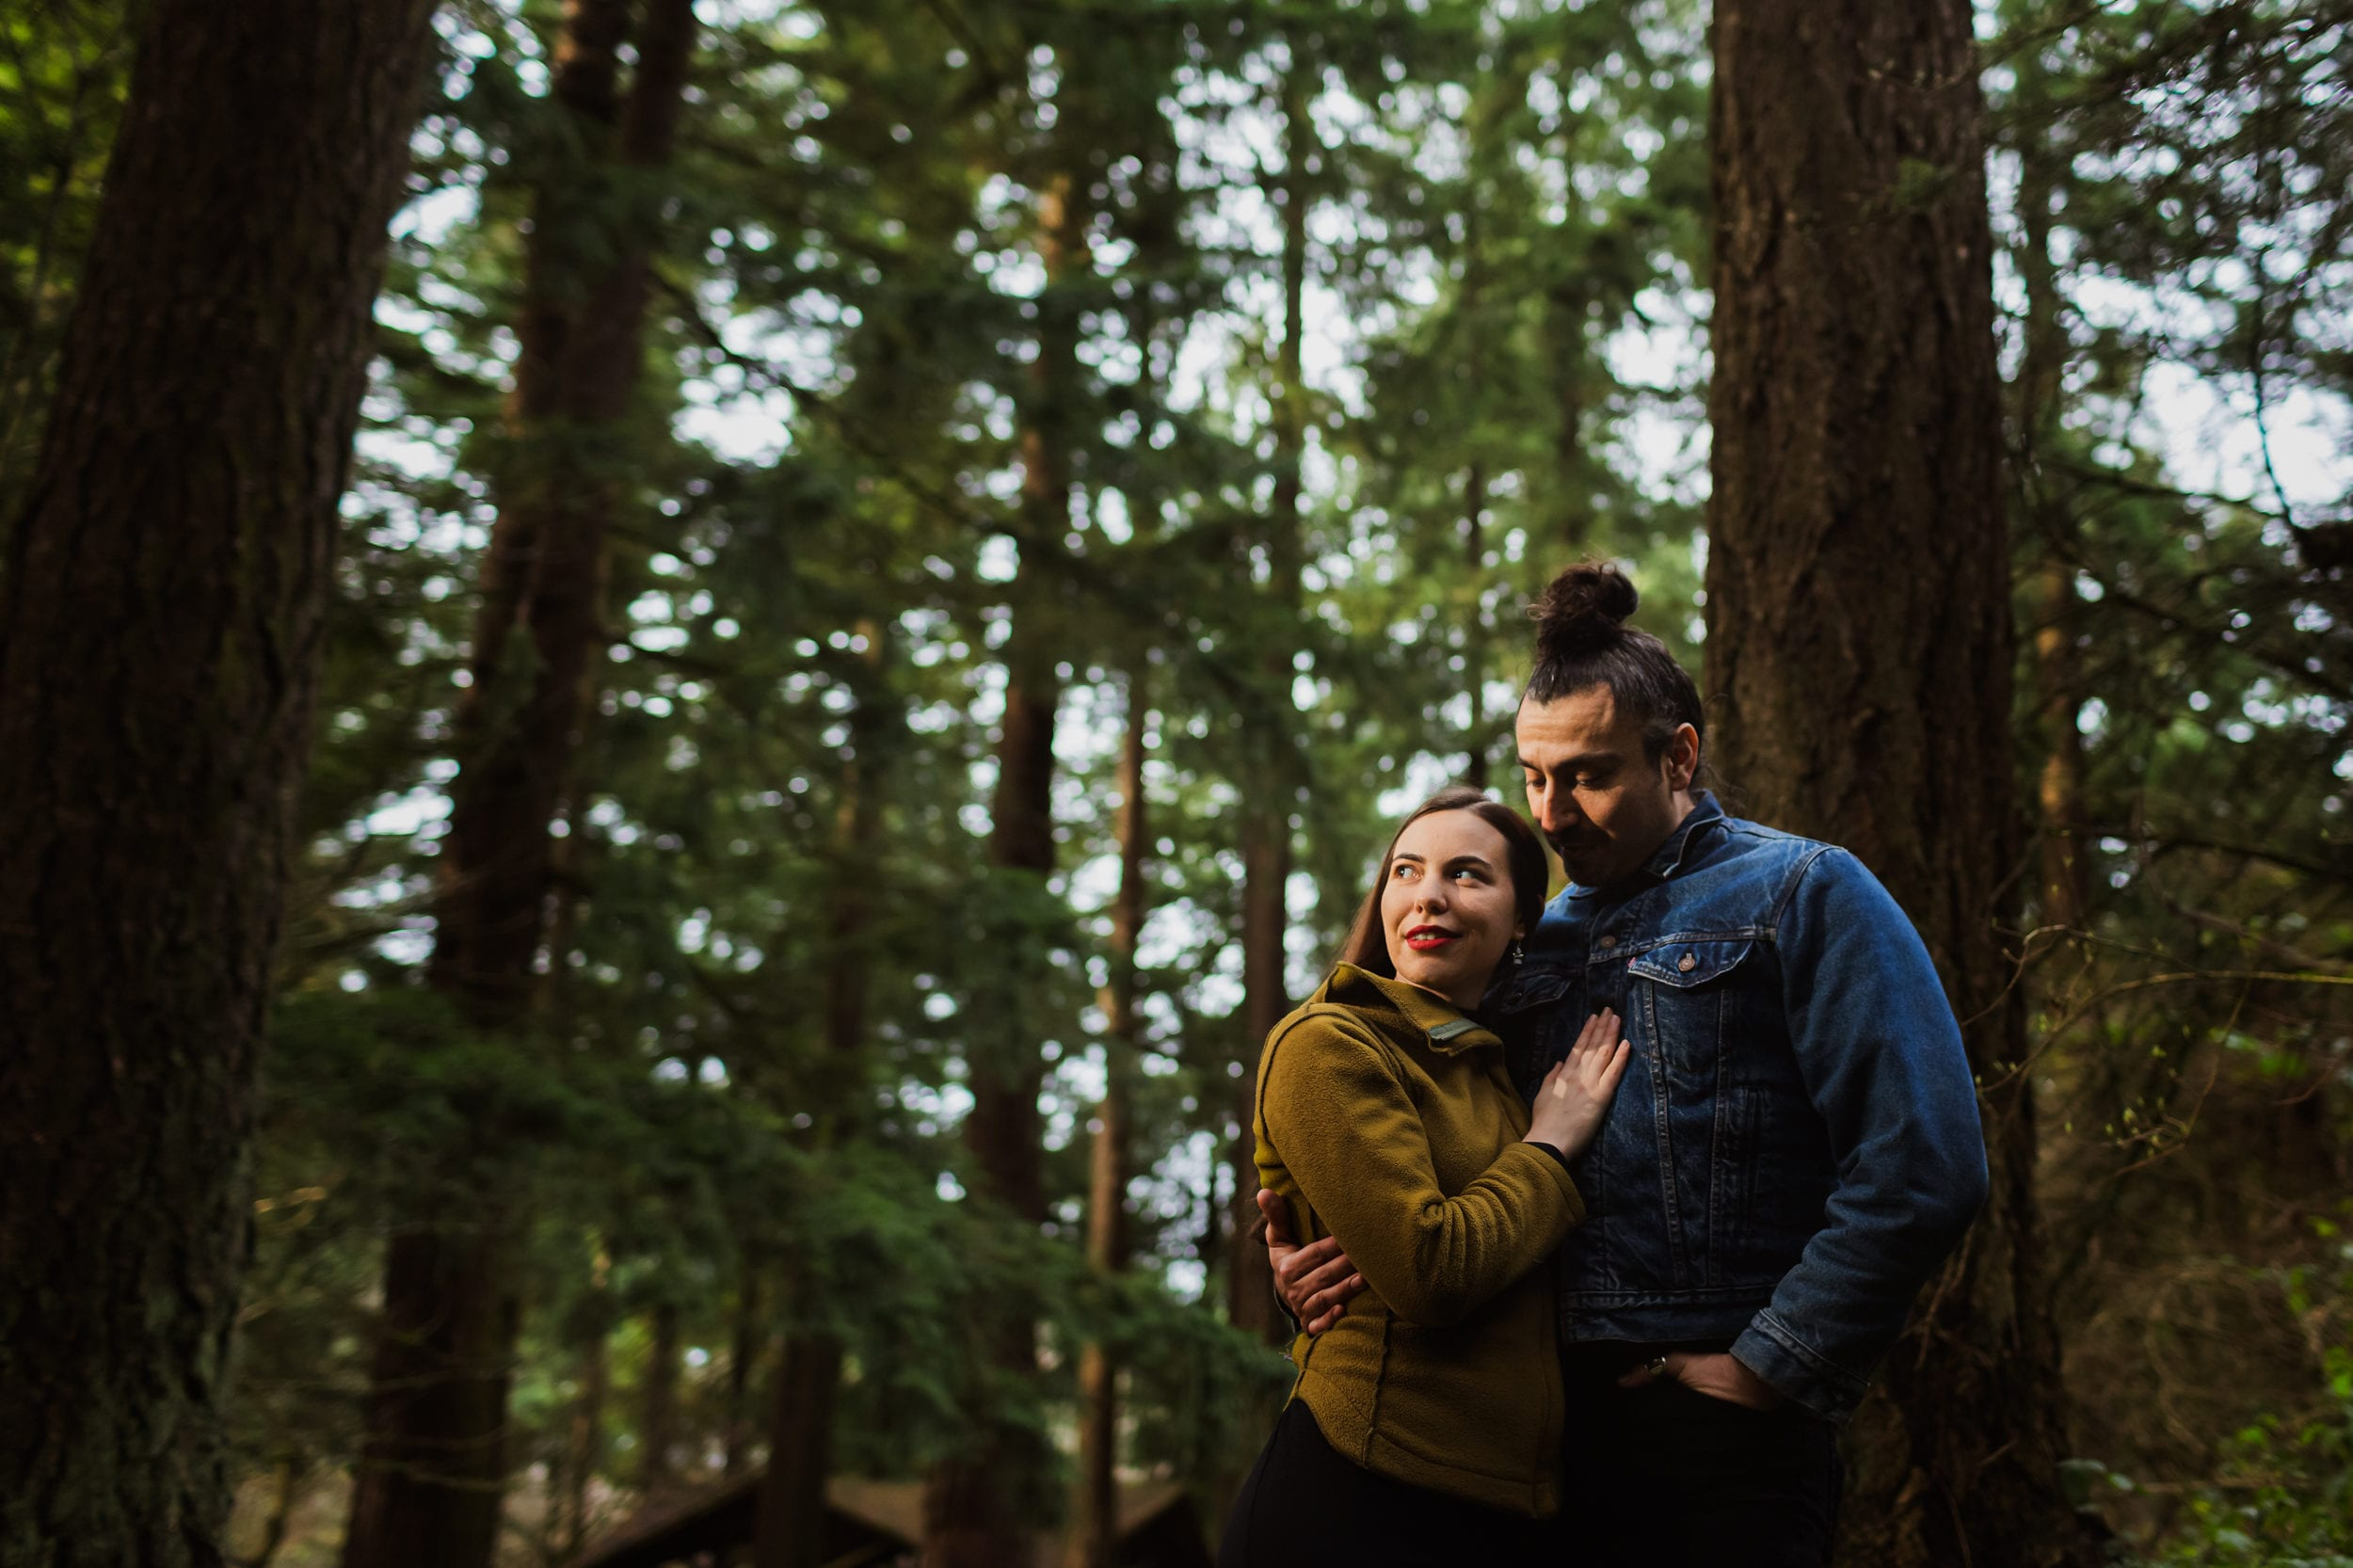 mt_tabor_engagement_photos_portland_003